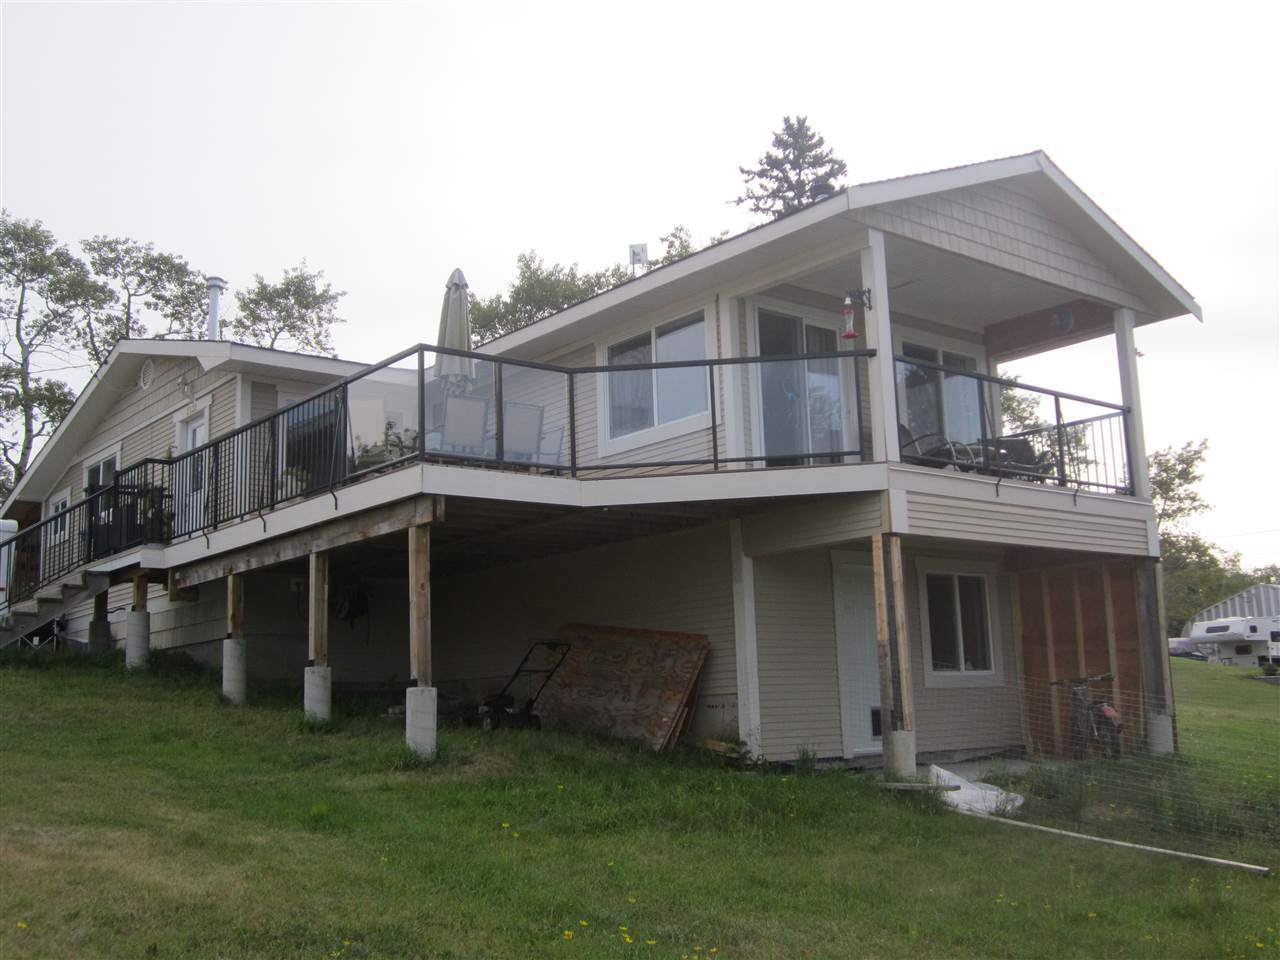 Main Photo: 3632 FORBES Road: Lac la Hache House for sale (100 Mile House (Zone 10))  : MLS®# R2104011